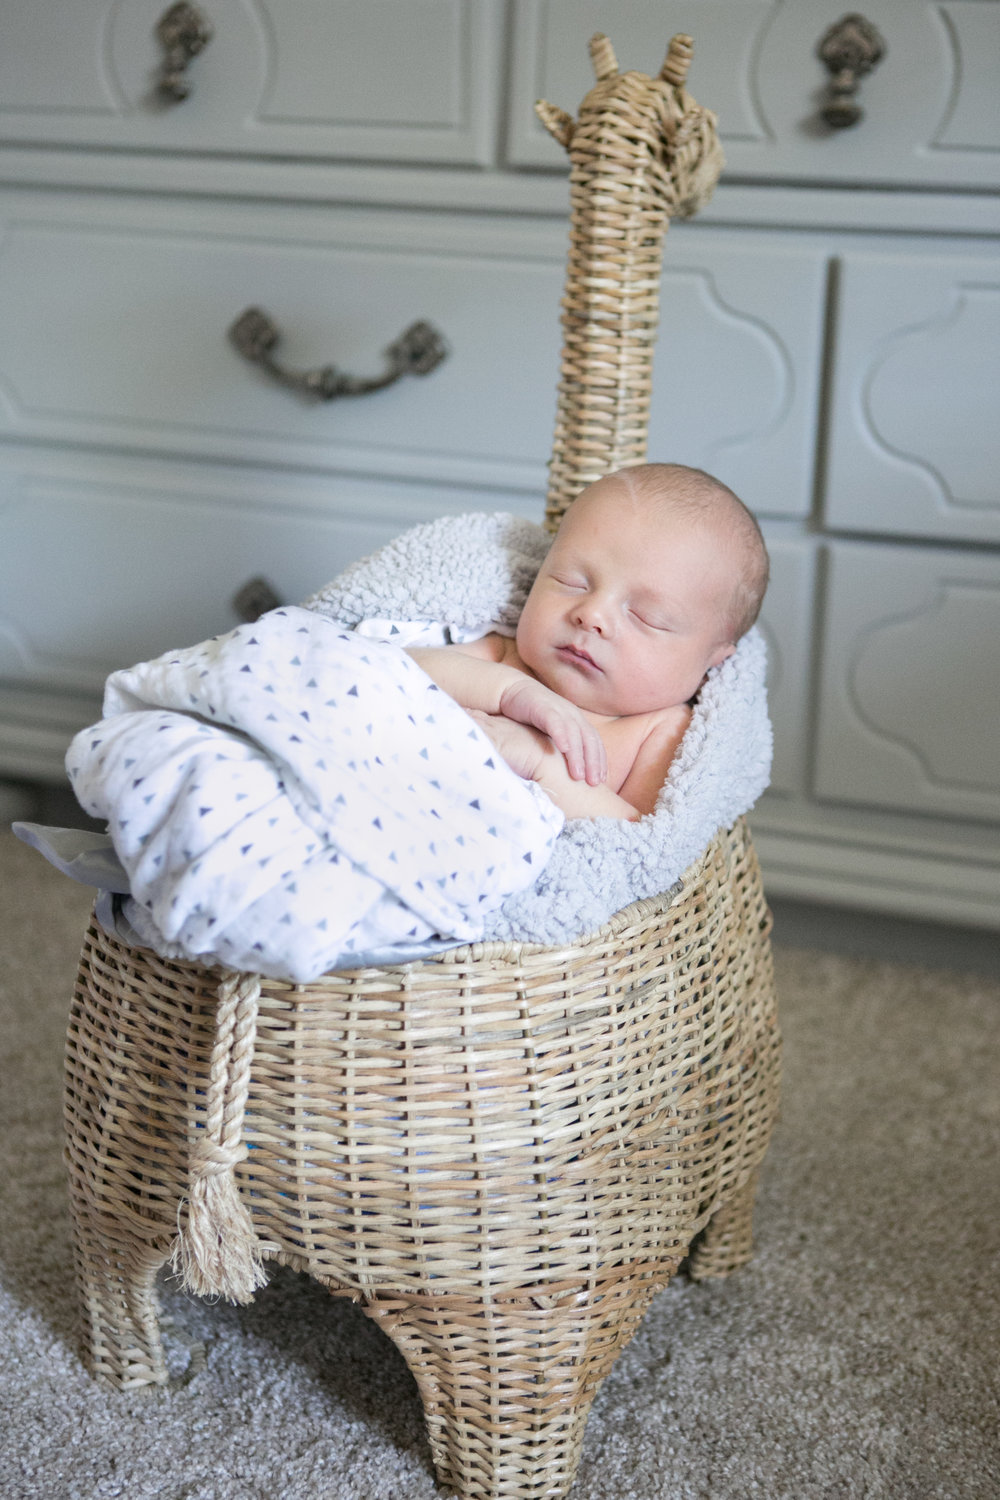 4_6_17 Boone Tampa Newborn Session 01.jpg